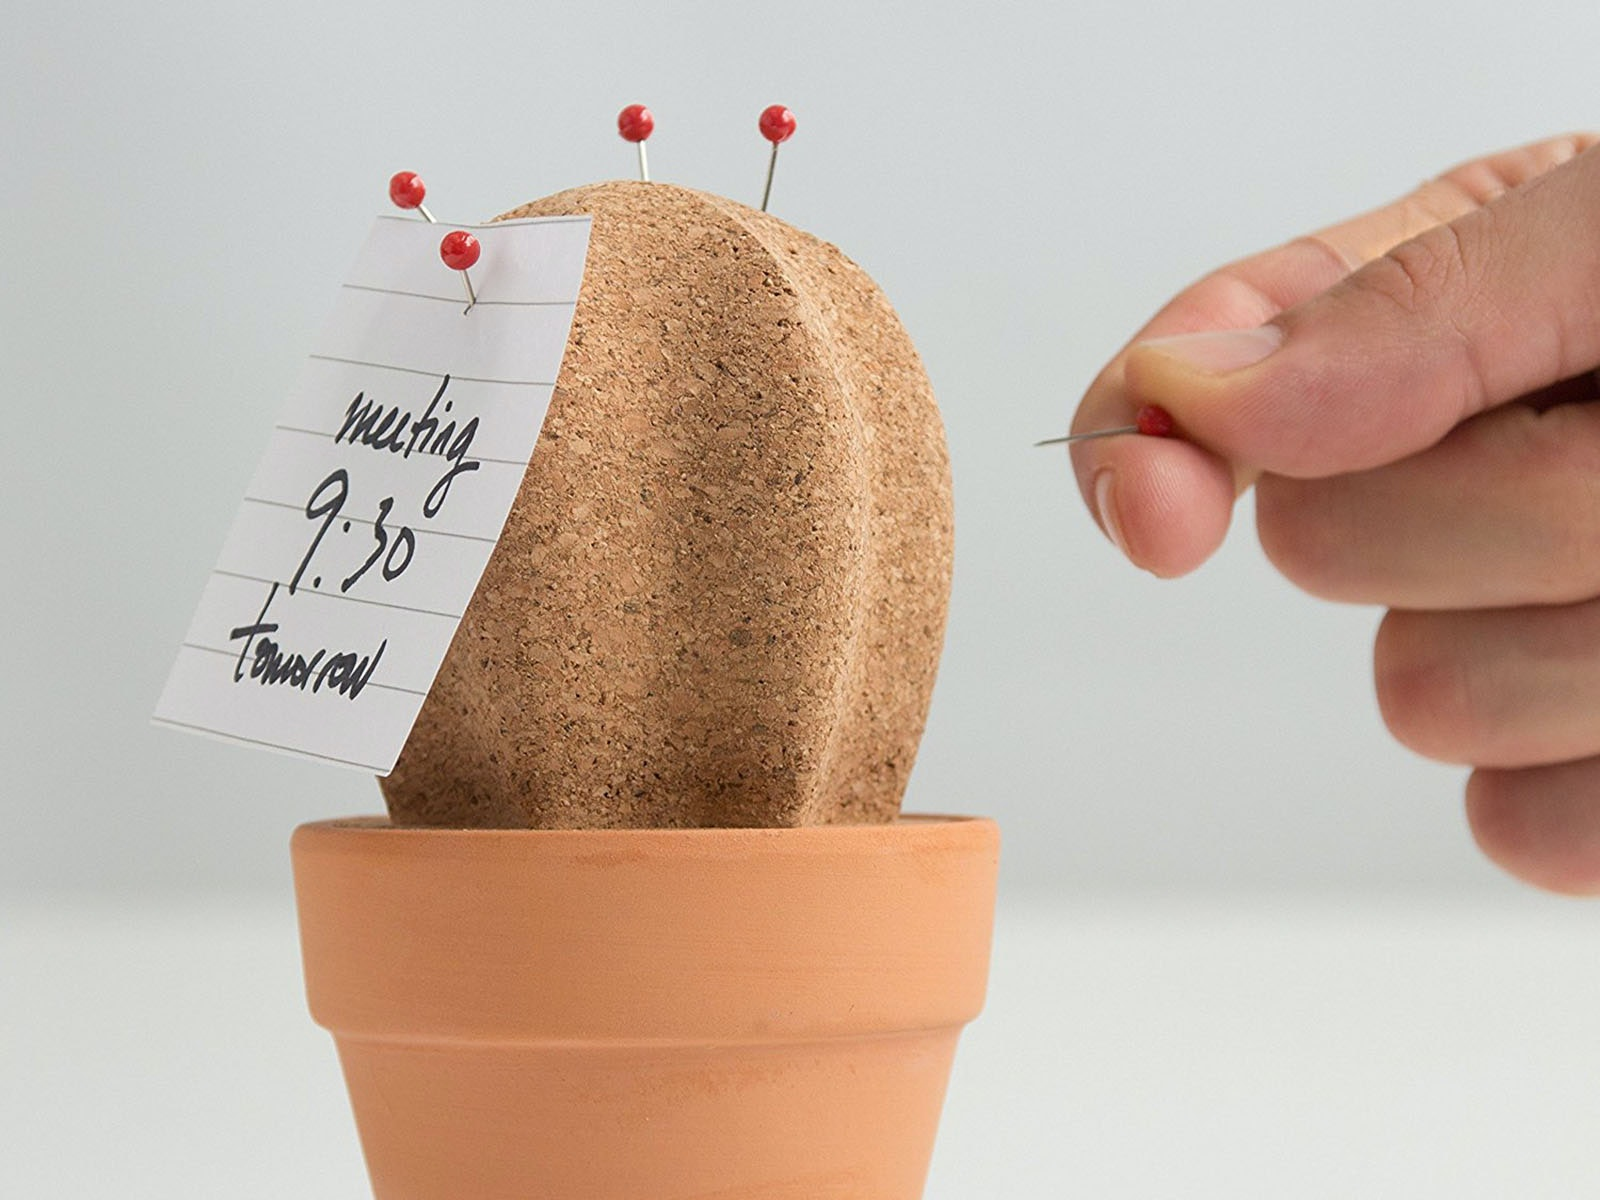 A prick-free cork cactus... with a secret